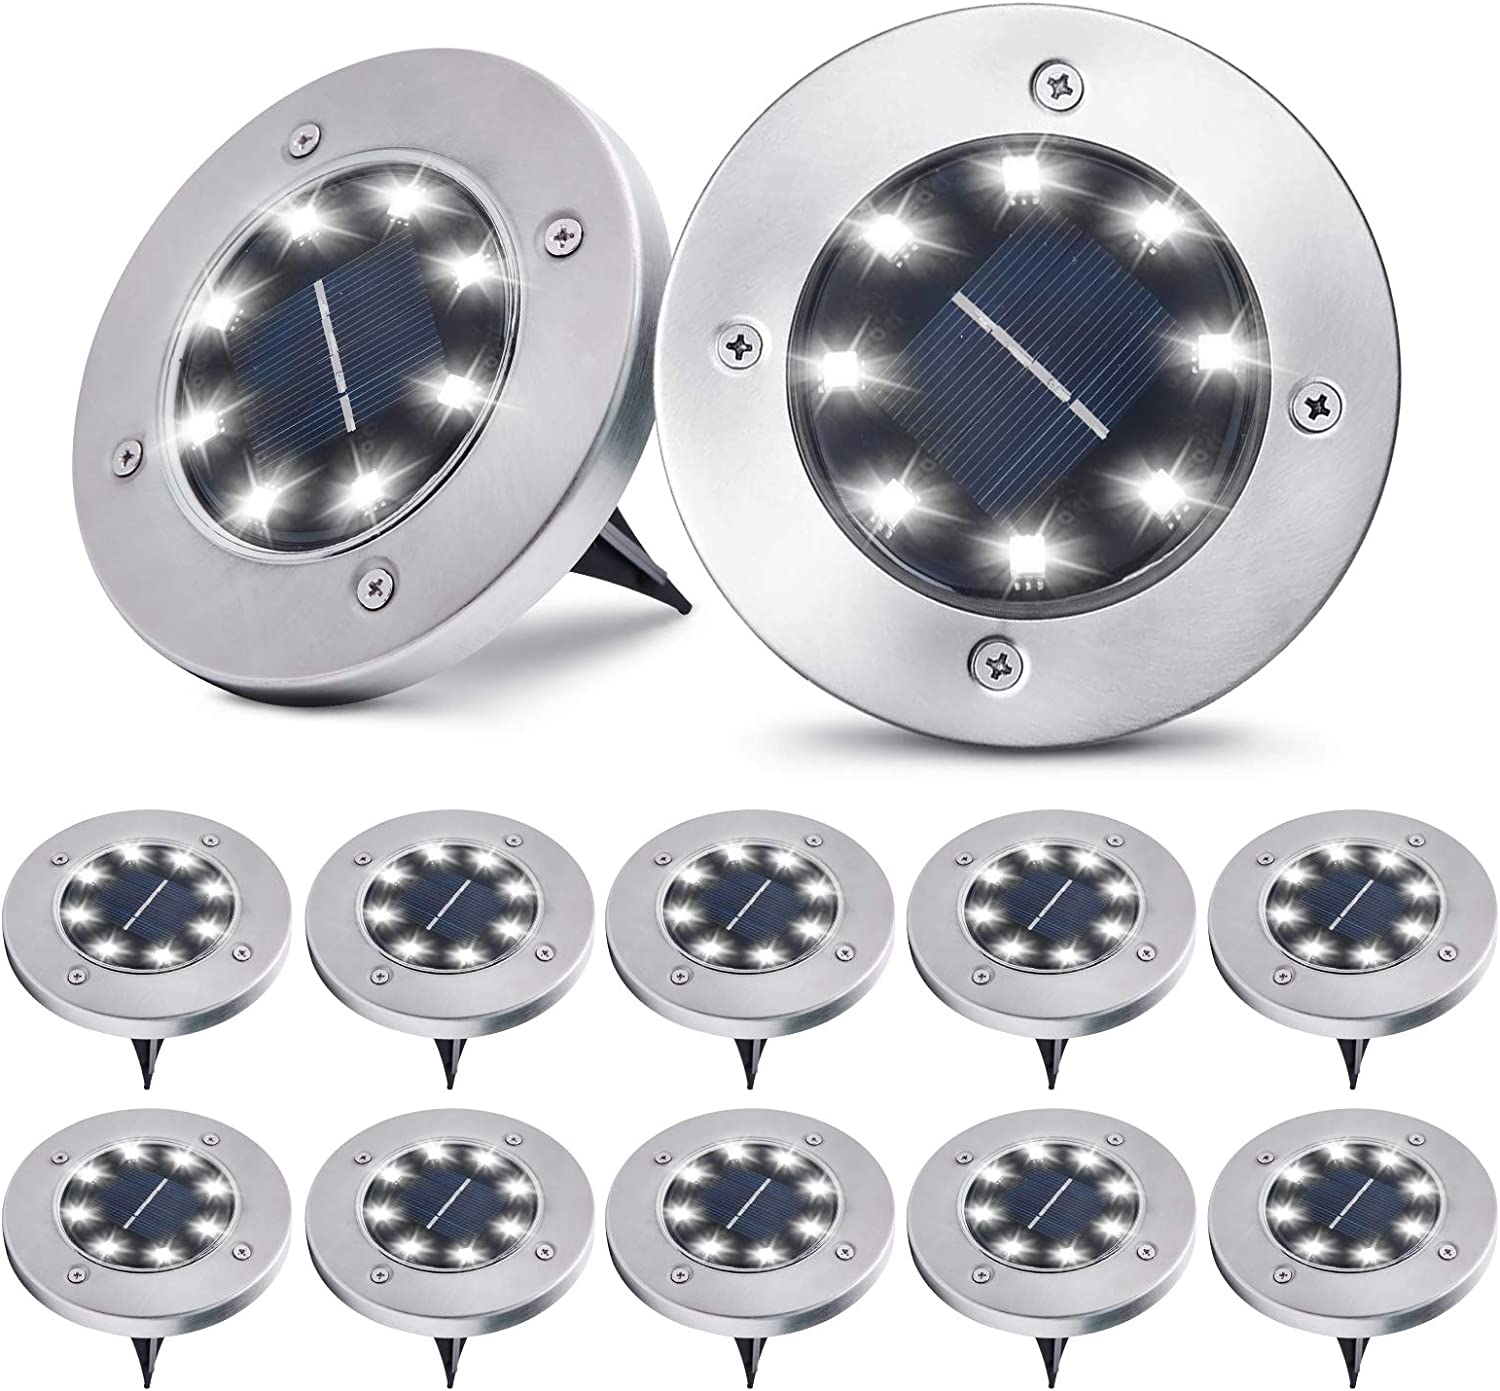 Solar Ground Lights,12 Packs 8 LED Solar Garden Lights Outdoor Waterproof in-Upgraded Outdoor Garden Waterproof Bright in-Ground Lights for Lawn Pathway Yard Driveway(Cold White)